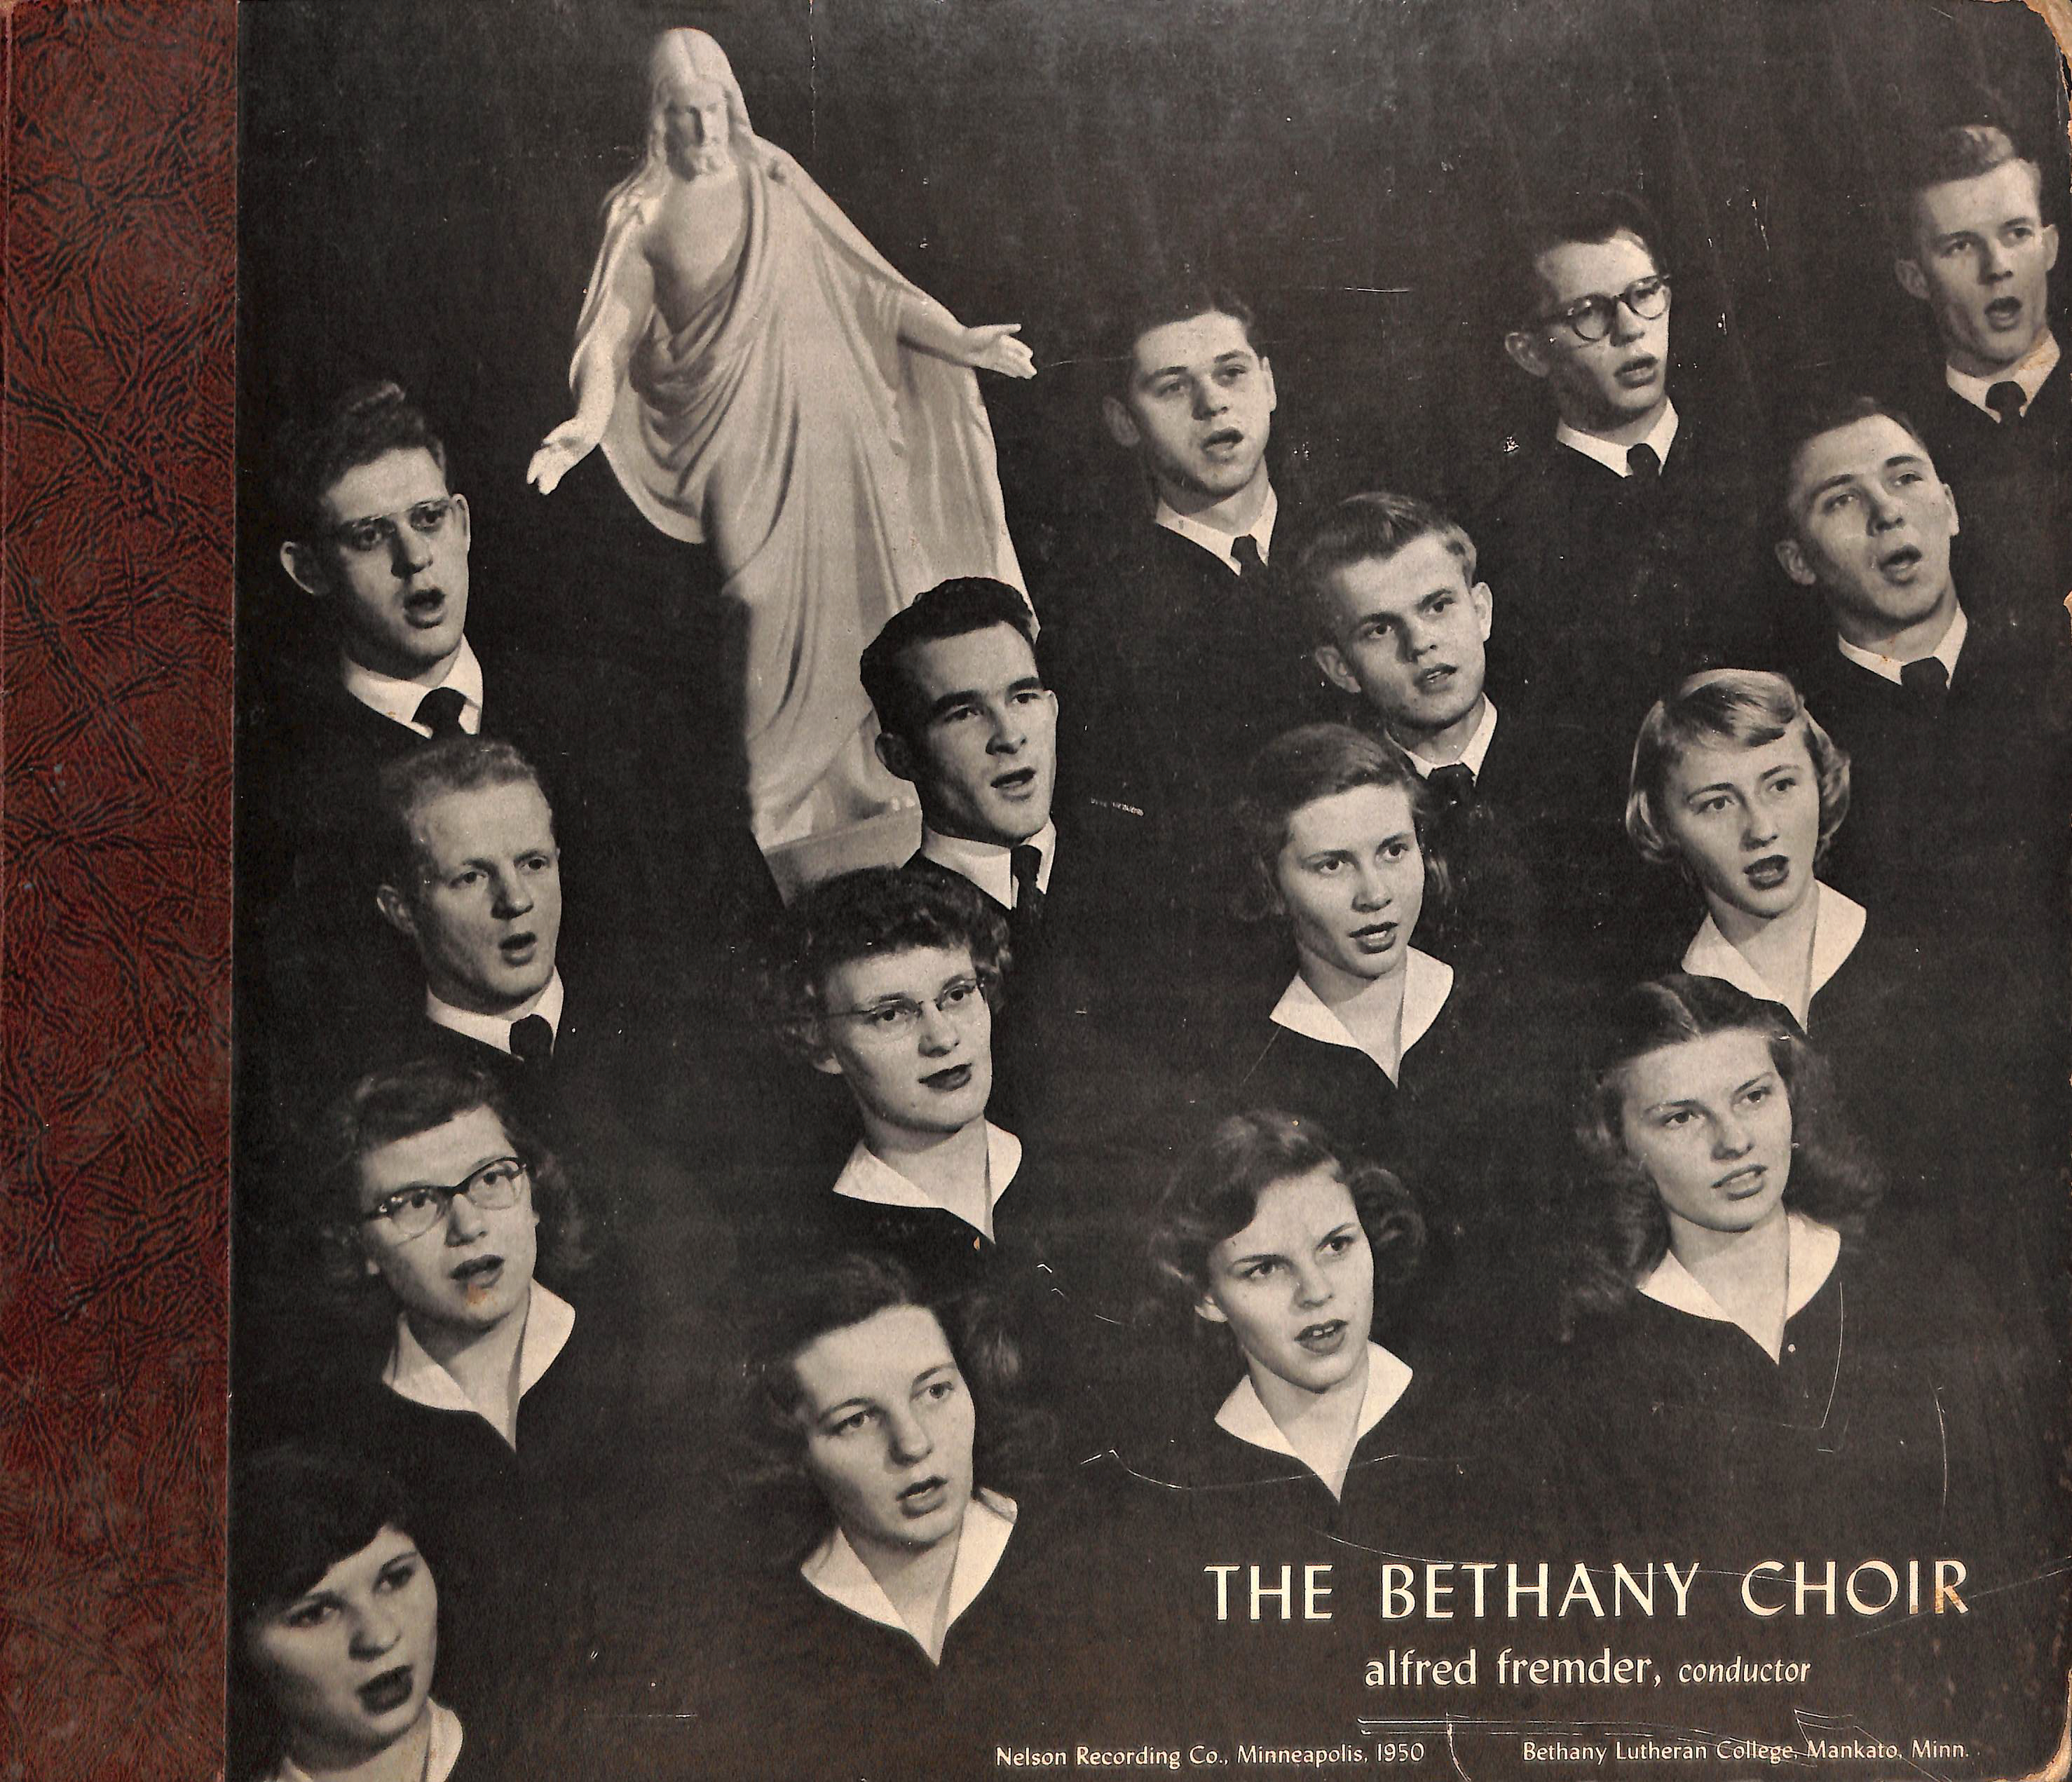 The Bethany Choir 1950: Sing Praises, Ye Faithful